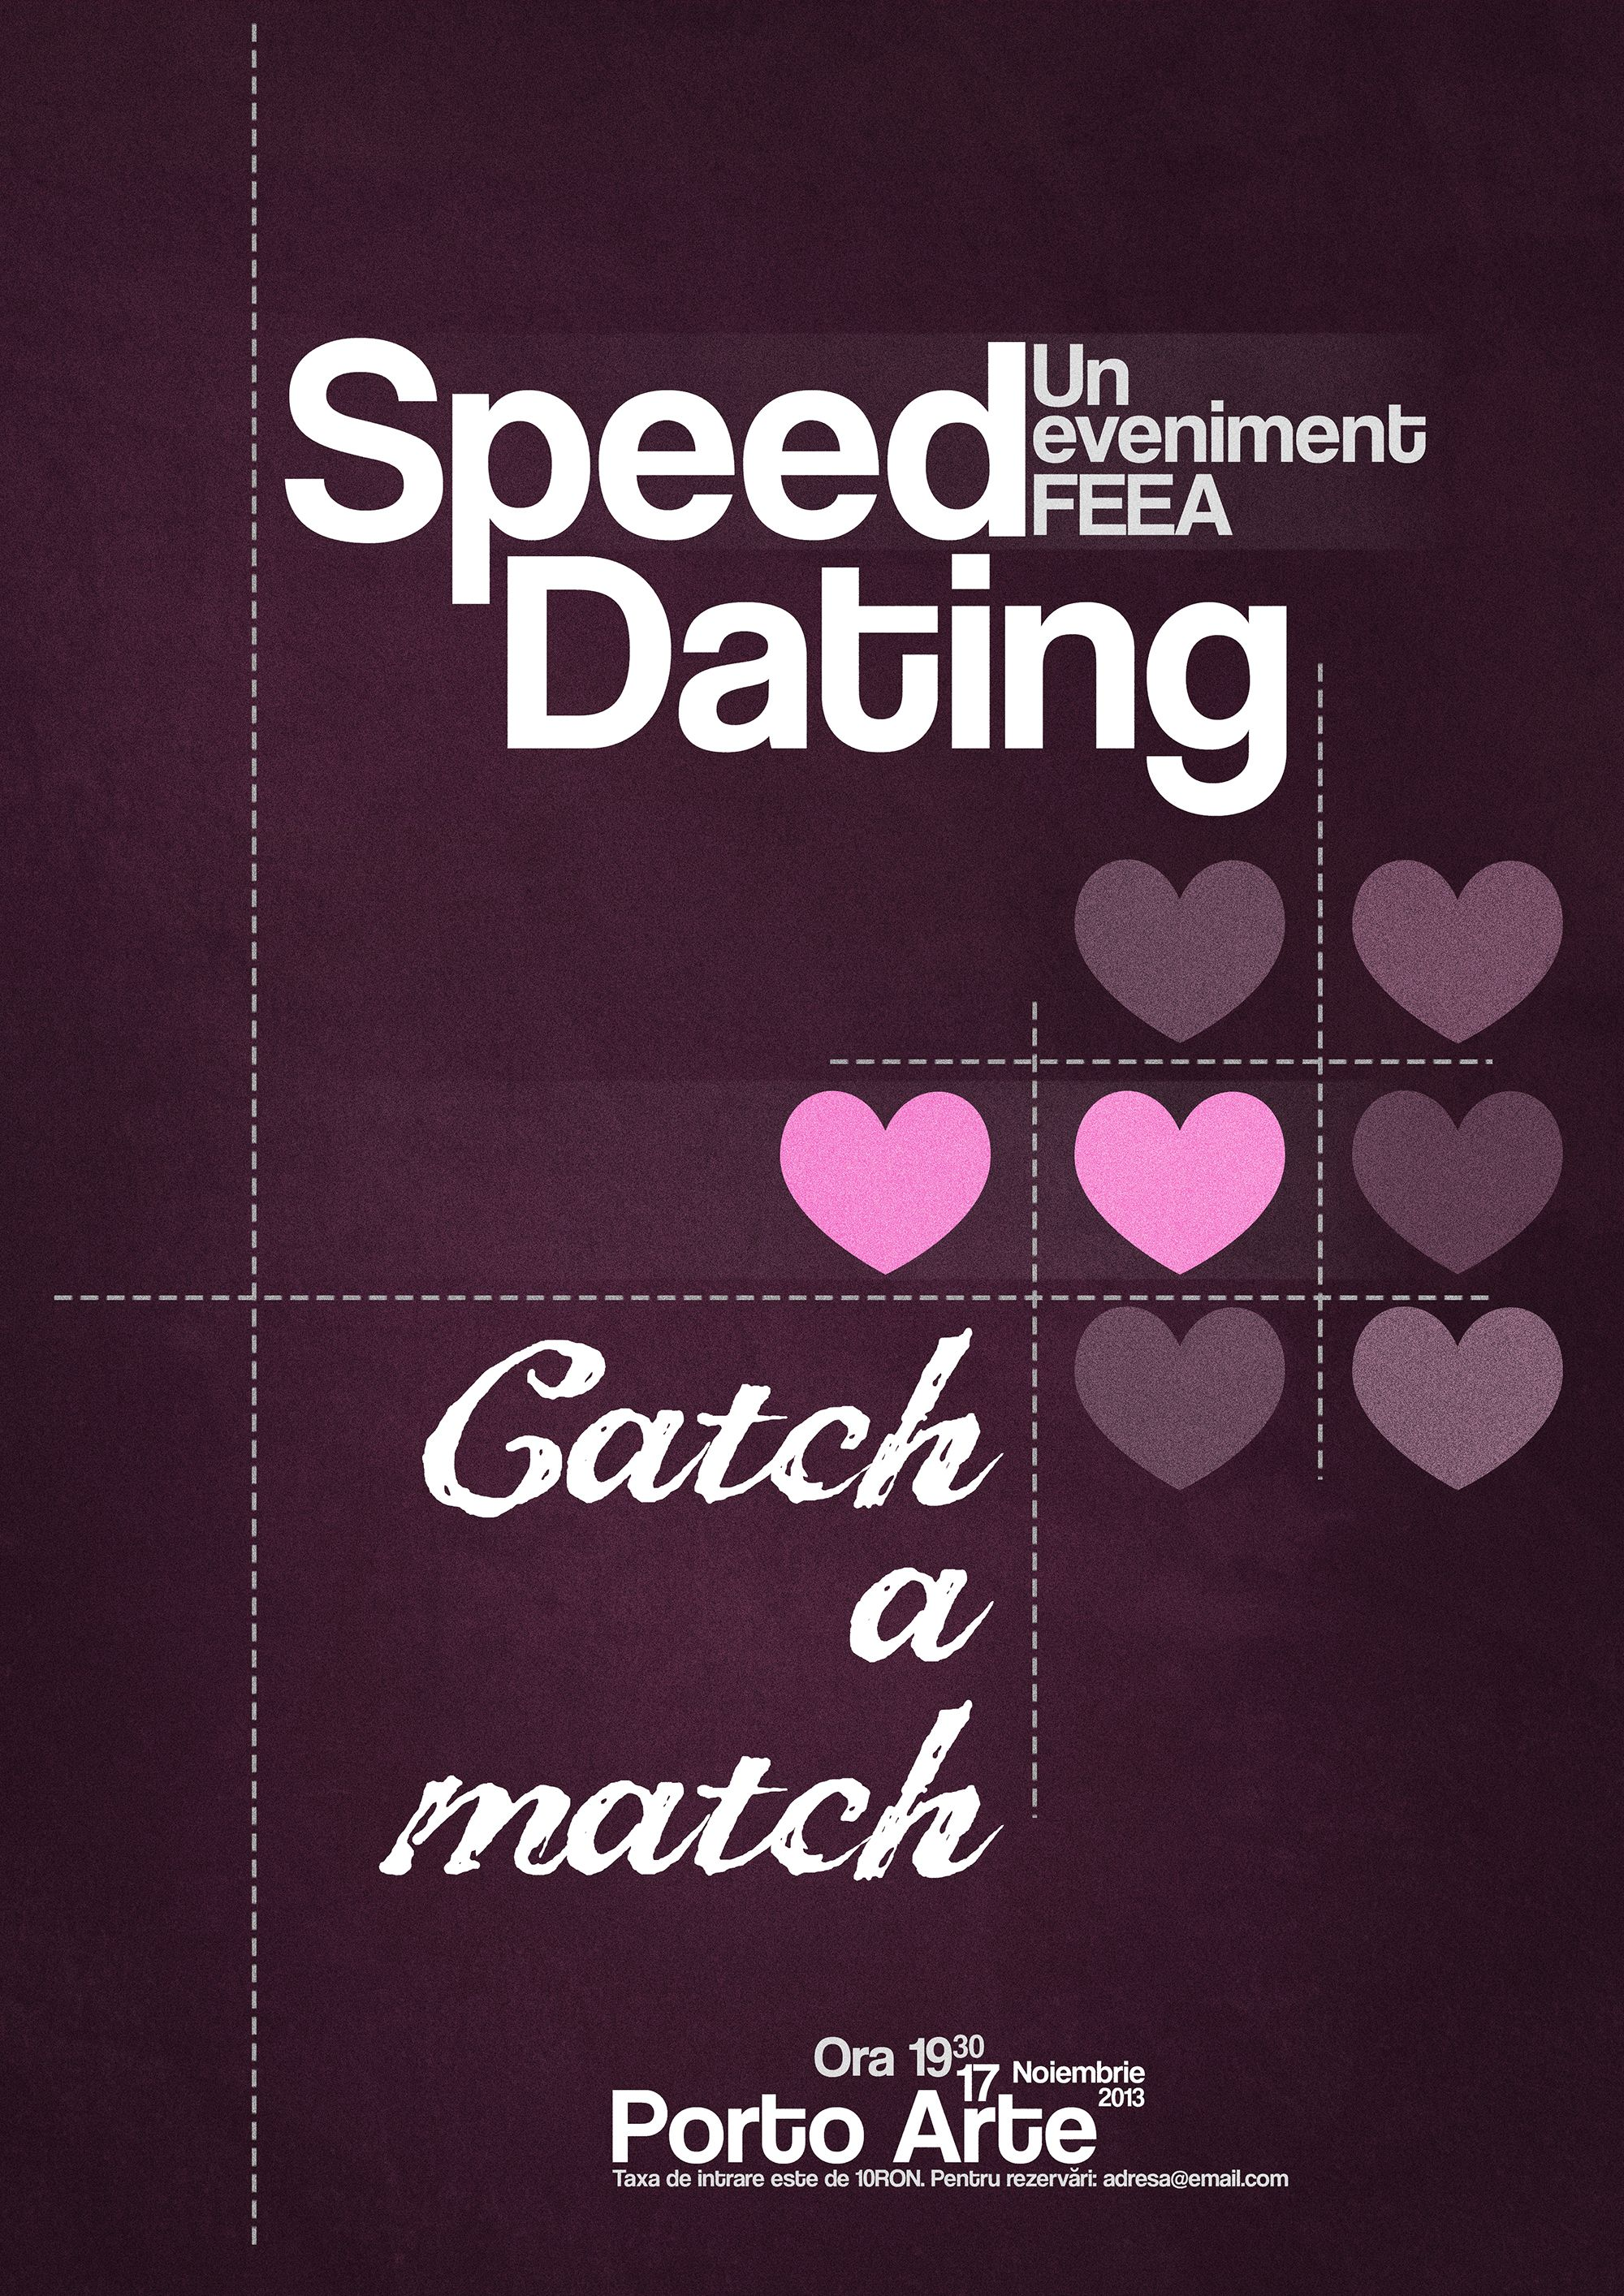 how to organize speed dating events D be organizing speed dating event honored if you joined us it contains the features like event organizing and wordpress themes for events orange county convention center in orlando, fl event planning is one of the best lines of business to get event planning website themes templates whether by organizing a speed amolatina dating site.